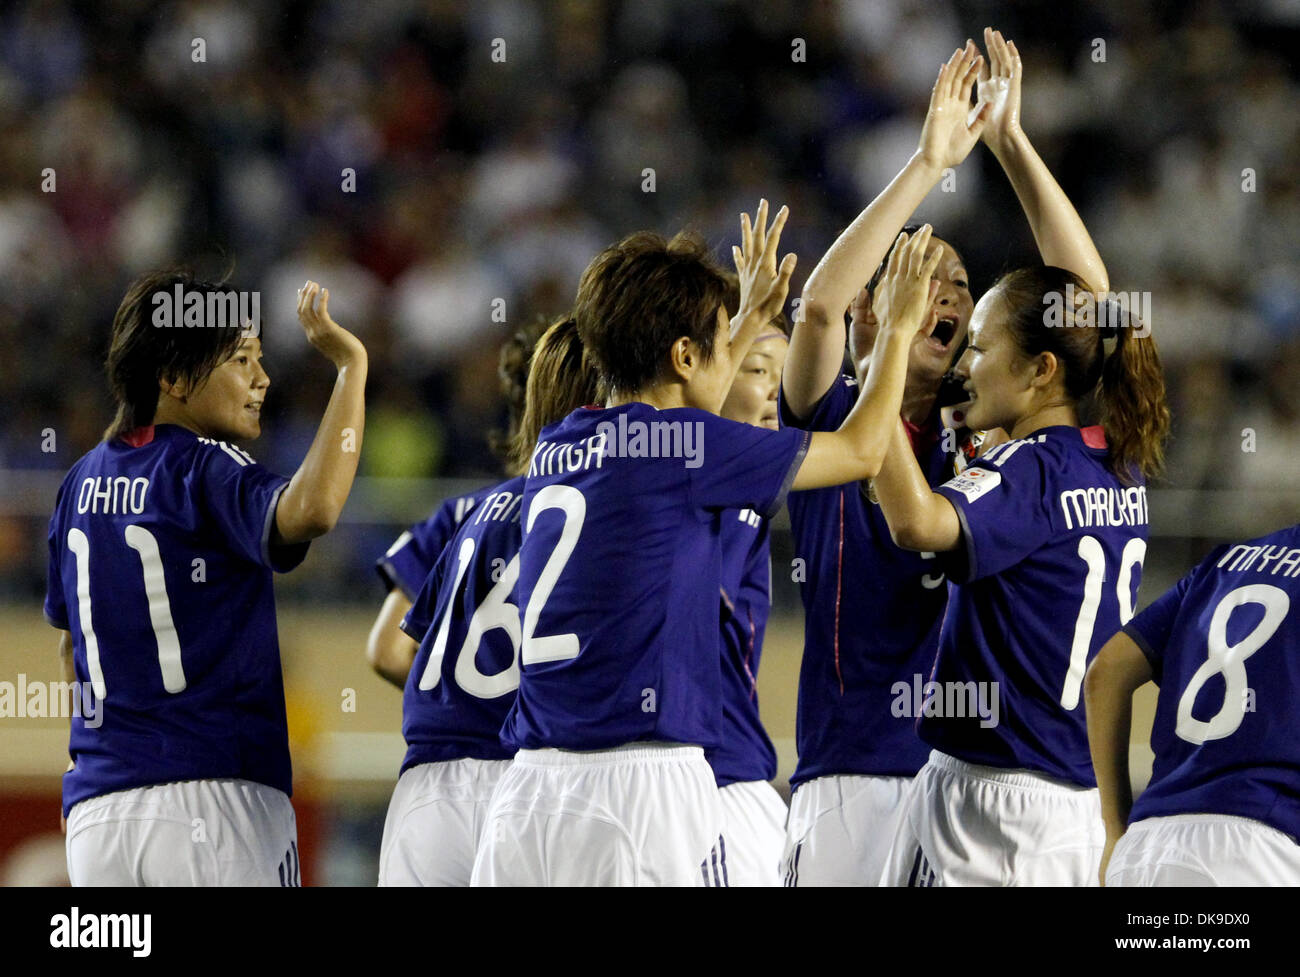 Aug. 19, 2011 - Tokyo, Japan - Players of Japan Women's National Team celebrate the score during the charity match for the earthquake and tsunami victims at the National Stadium in Tokyo, Japan. Japan Women's National Team defeated Nadeshiko League Team by 3-2. (Credit Image: © Shugo Takemi/Jana Press/ZUMAPRESS.com) - Stock Image